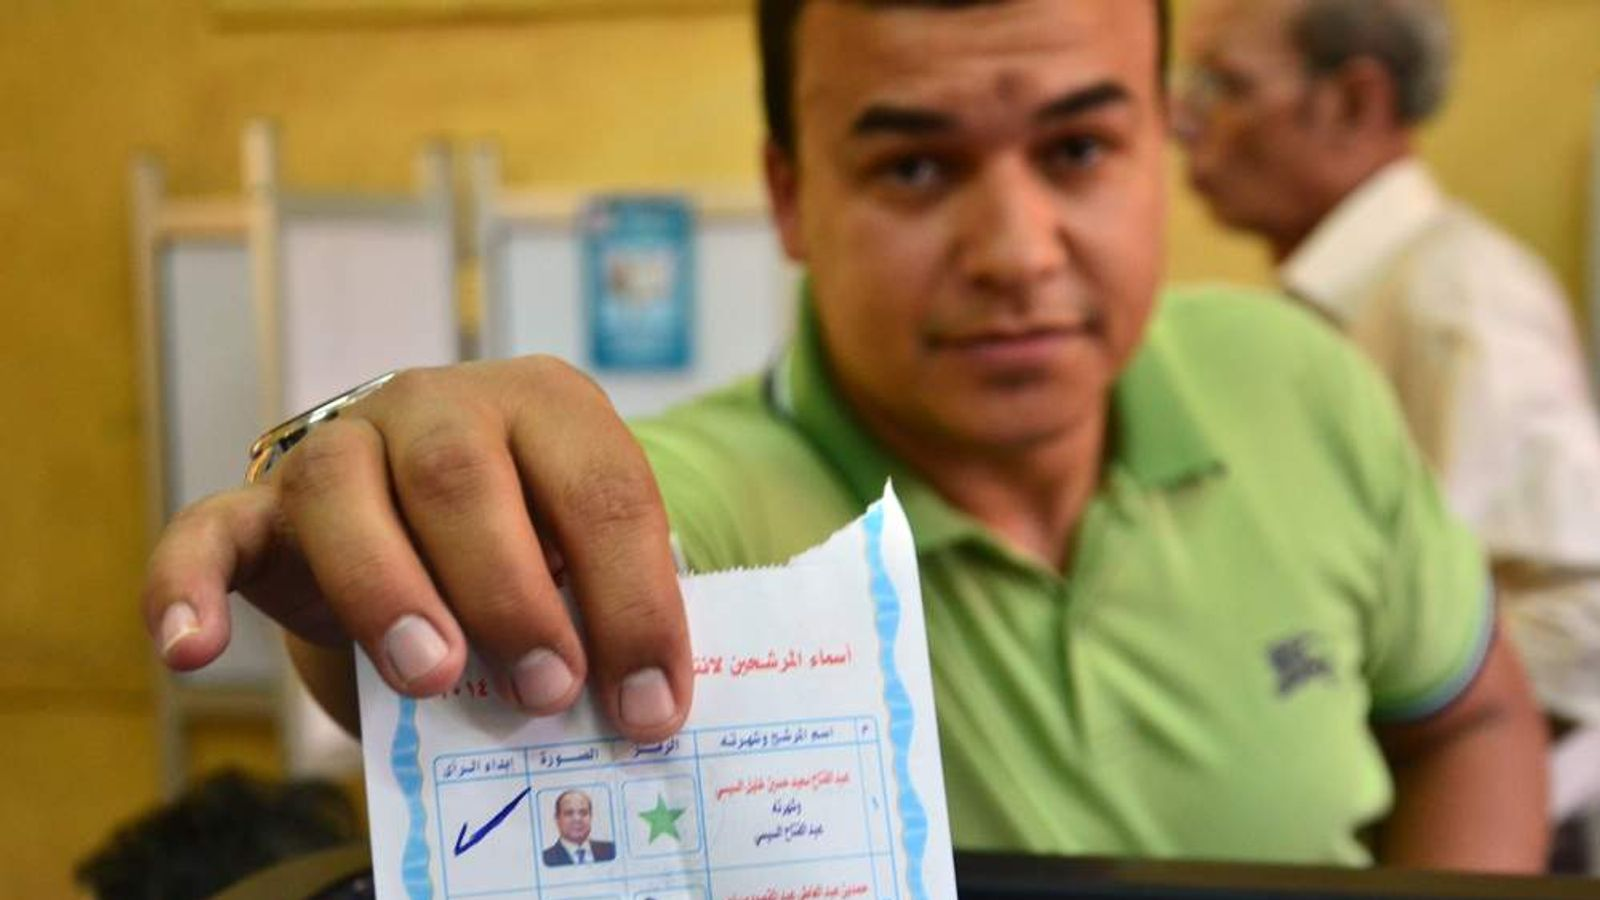 An Egyptian man displays his election card at a polling station